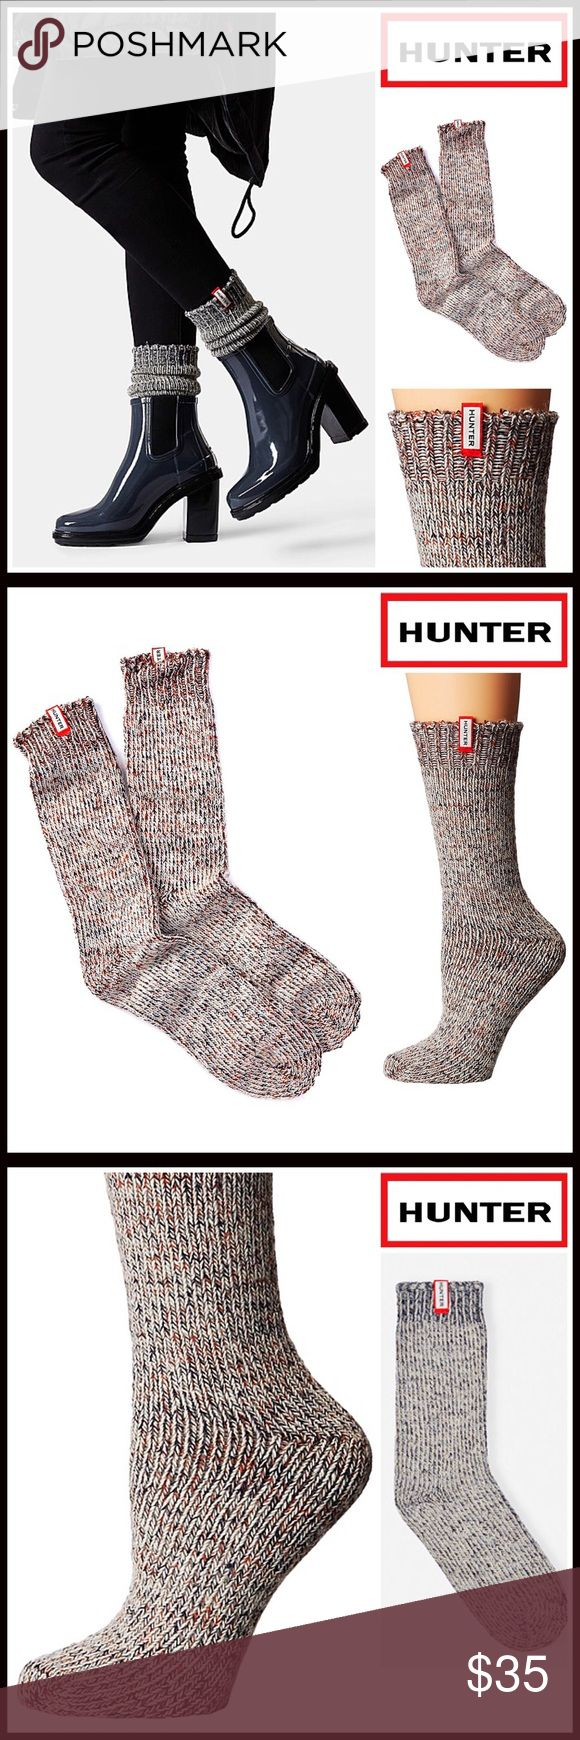 HUNTER ORIGINAL Boot Socks  NEW WITH TAGS   HUNTER ORIGINAL Boot Socks  * Super soft, cozy & comfortable fabric * Wool blend construction w/ ribbed knit detail * Stretch-to-fit * One size fits many, approx shoes sizes 5.5-9. Midcalf short boot length * Designed for 'Hunter Original Boots' Fabric- 62% acrylic, 21% wool, 11% polyester, 5% nylon, 1% elastane; Machine wash Item# Color-Navy multi Marled   No Trades ✅Bundle Discounts✅ Hunter Boots Accessories Hosiery & Socks